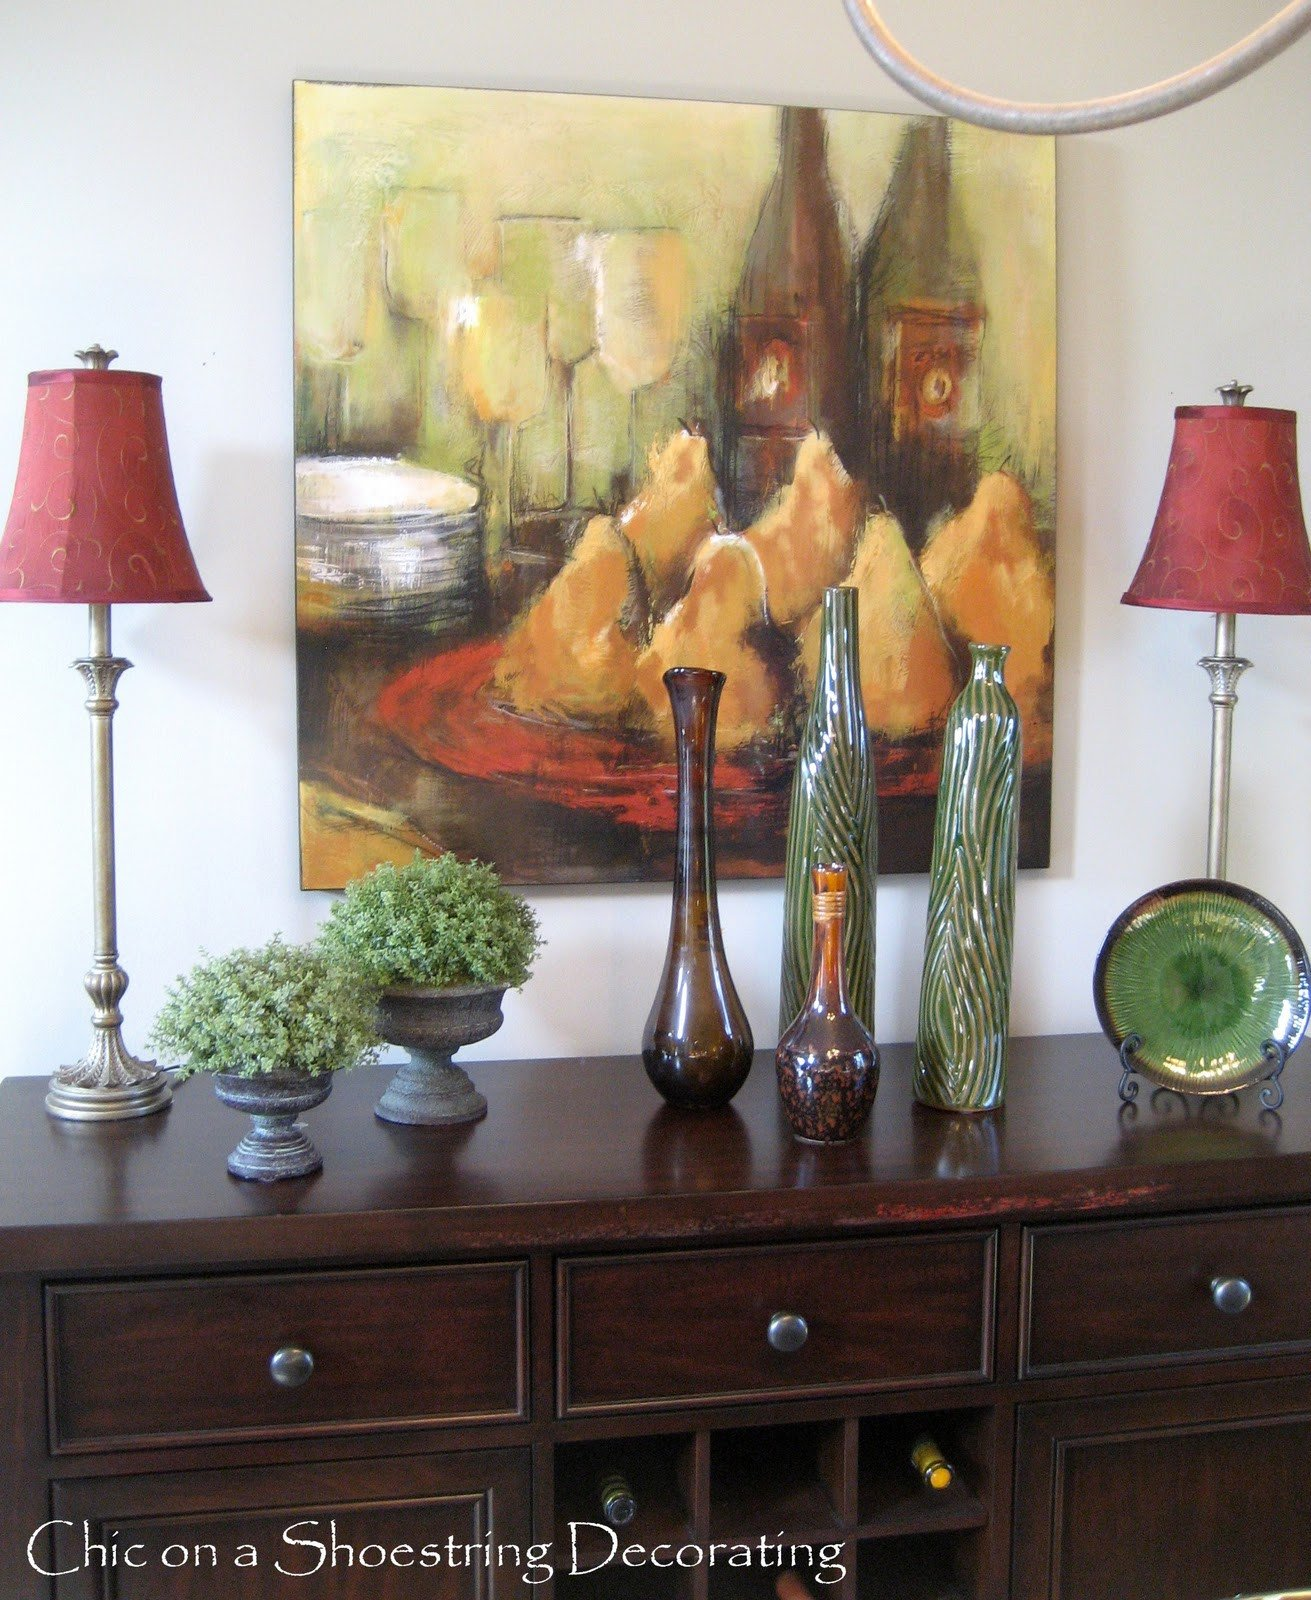 Dining Room Buffet Decor Ideas Inspirational Chic On A Shoestring Decorating Dining Room Buffet Revisited